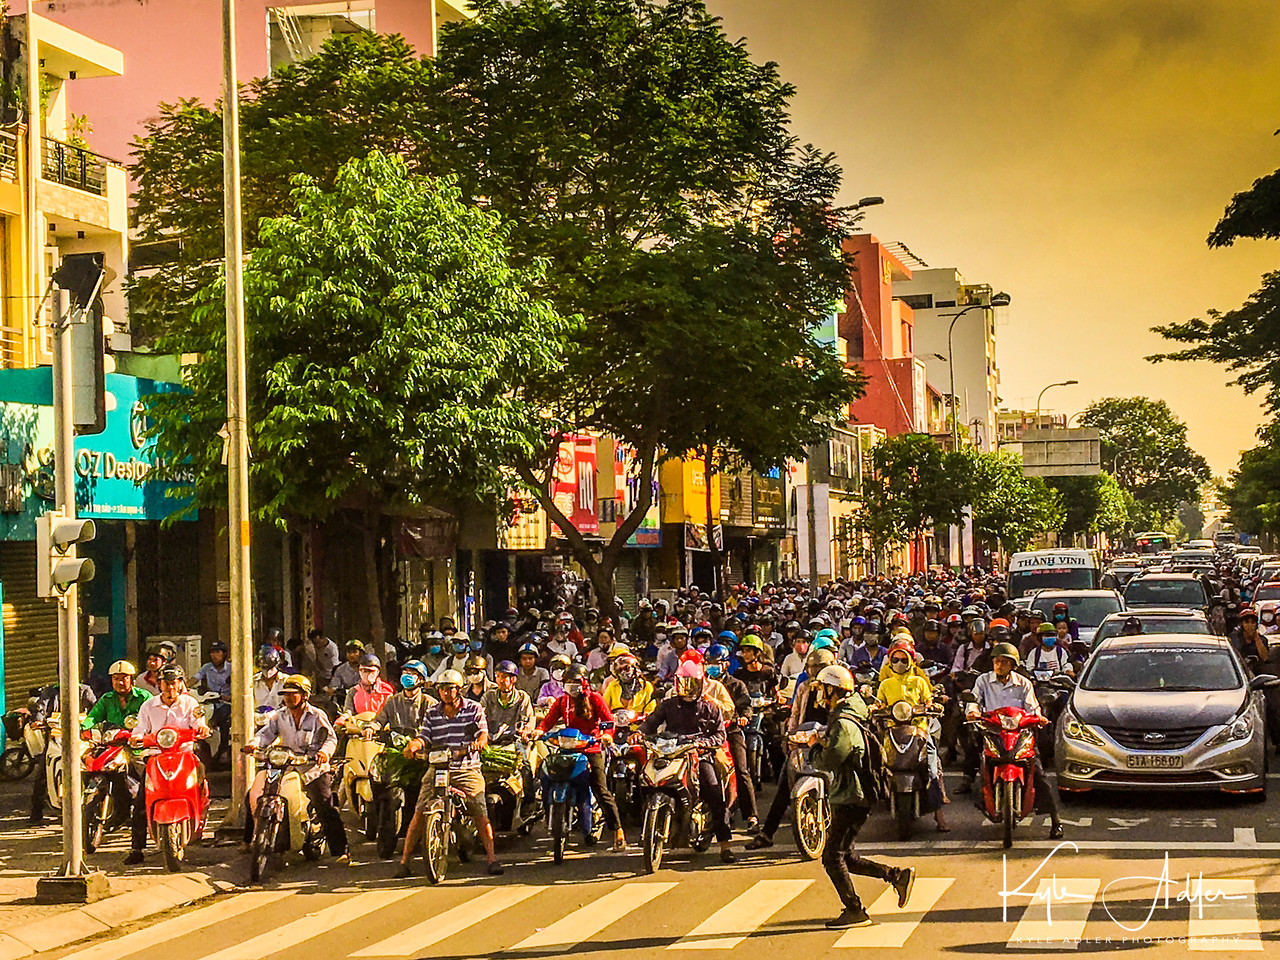 A last glimpse of the indescribable Saigon street life before heading to the airport to fly home.